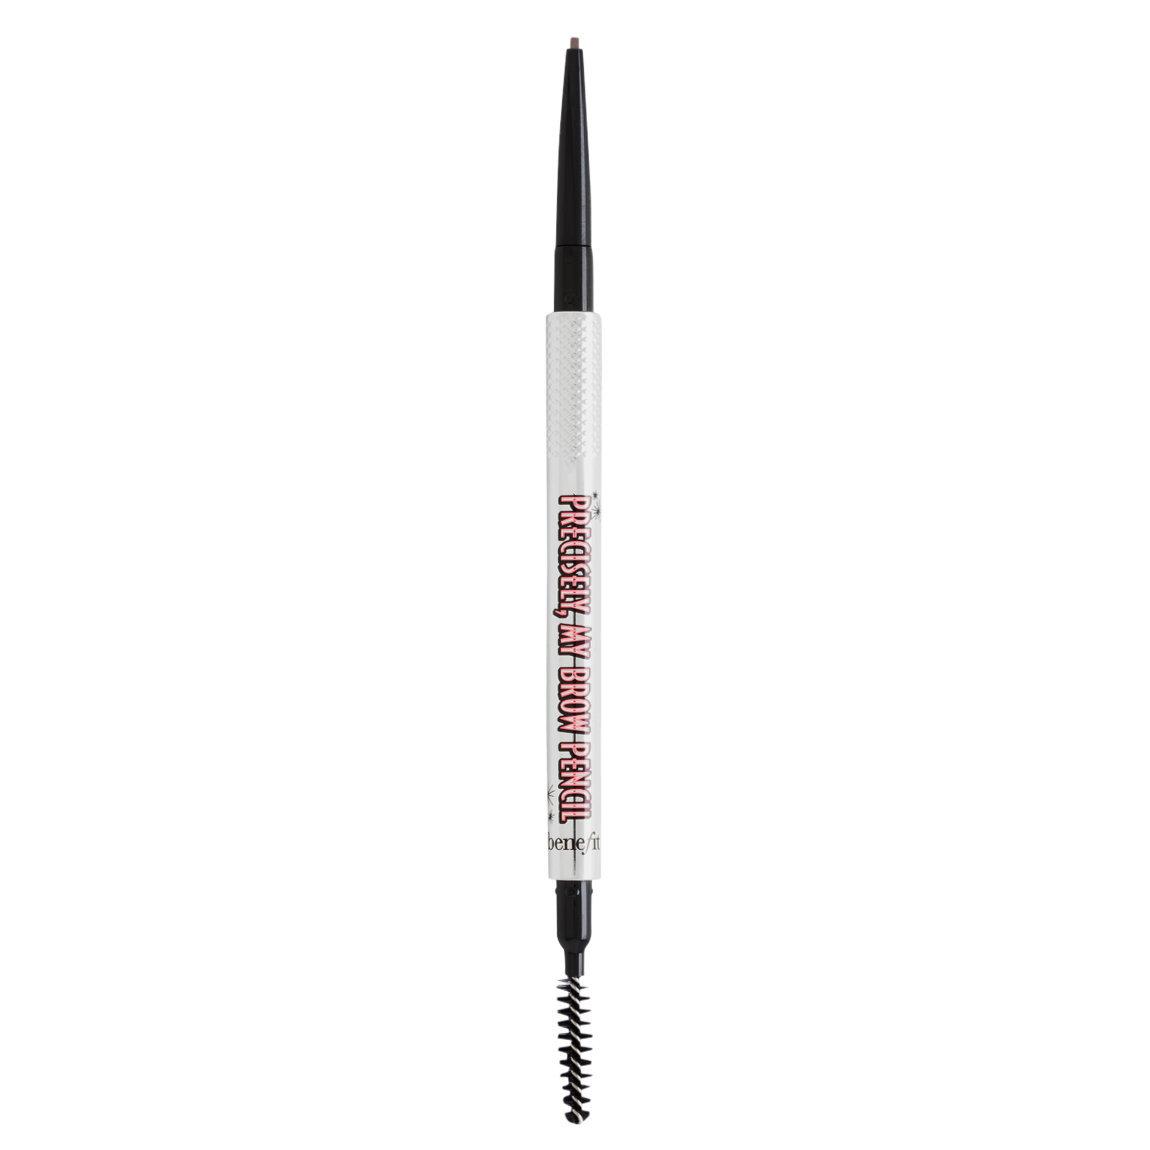 Benefit Cosmetics Precisely, My Brow Pencil 03 Warm Light Brown